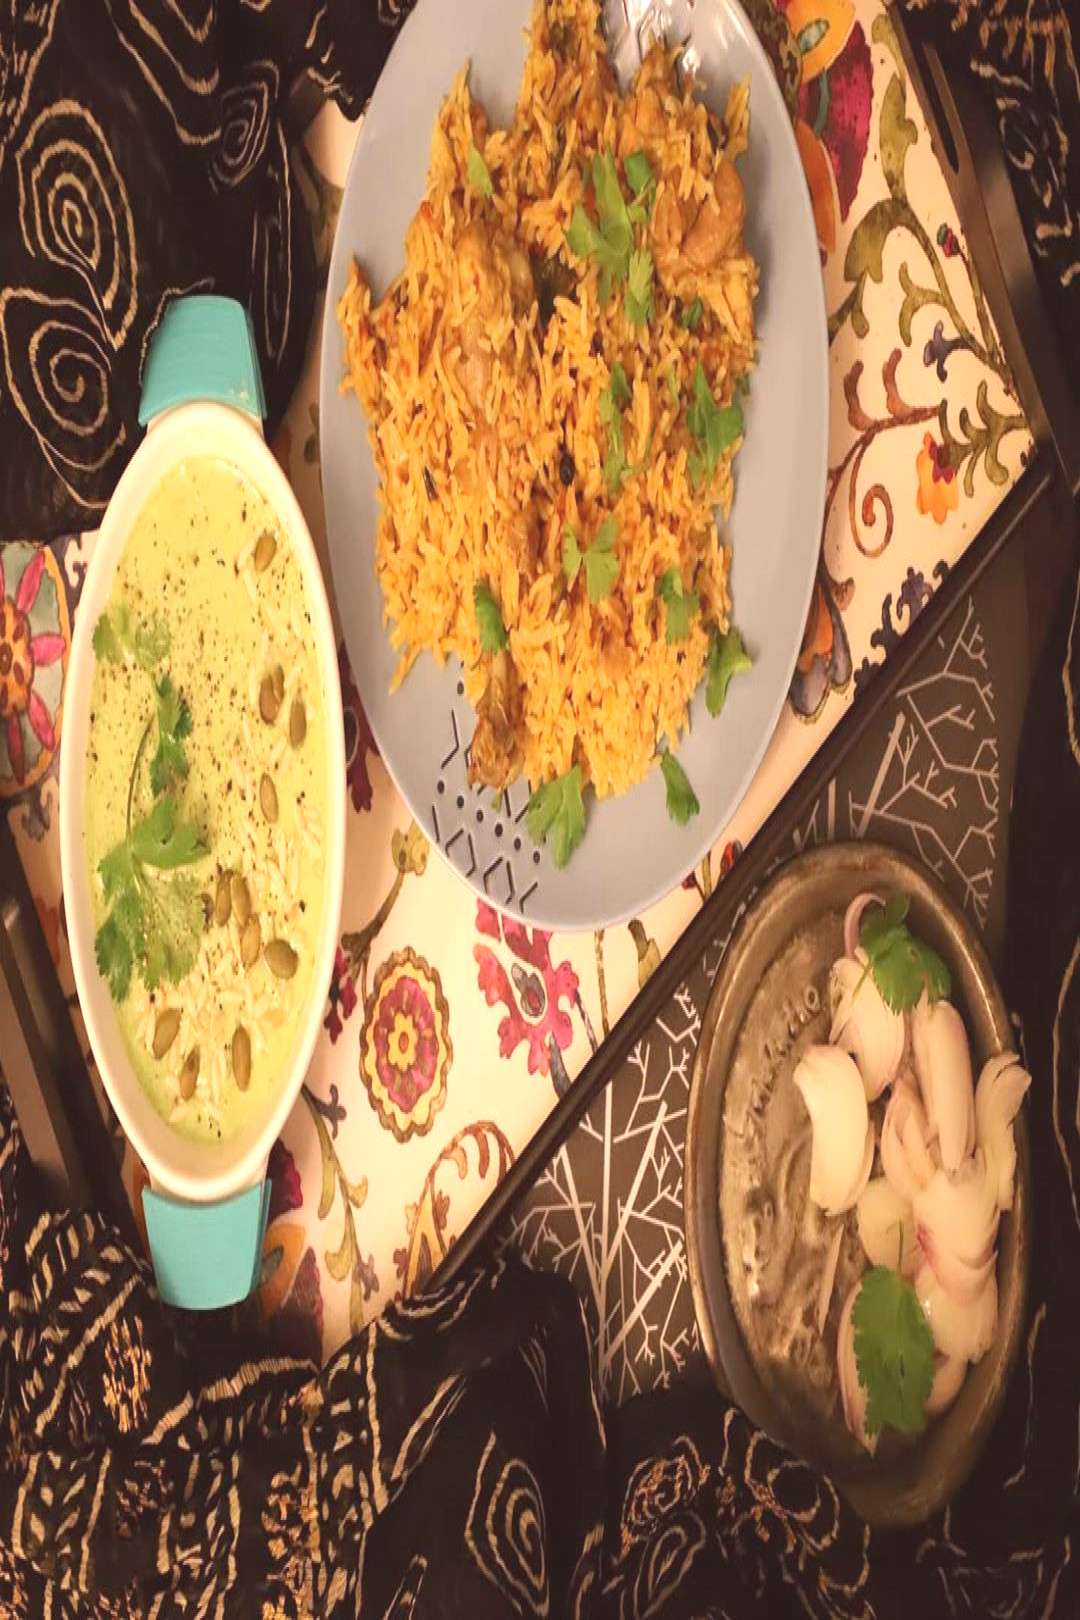  Most of the days we eat simple Indian food..... because that